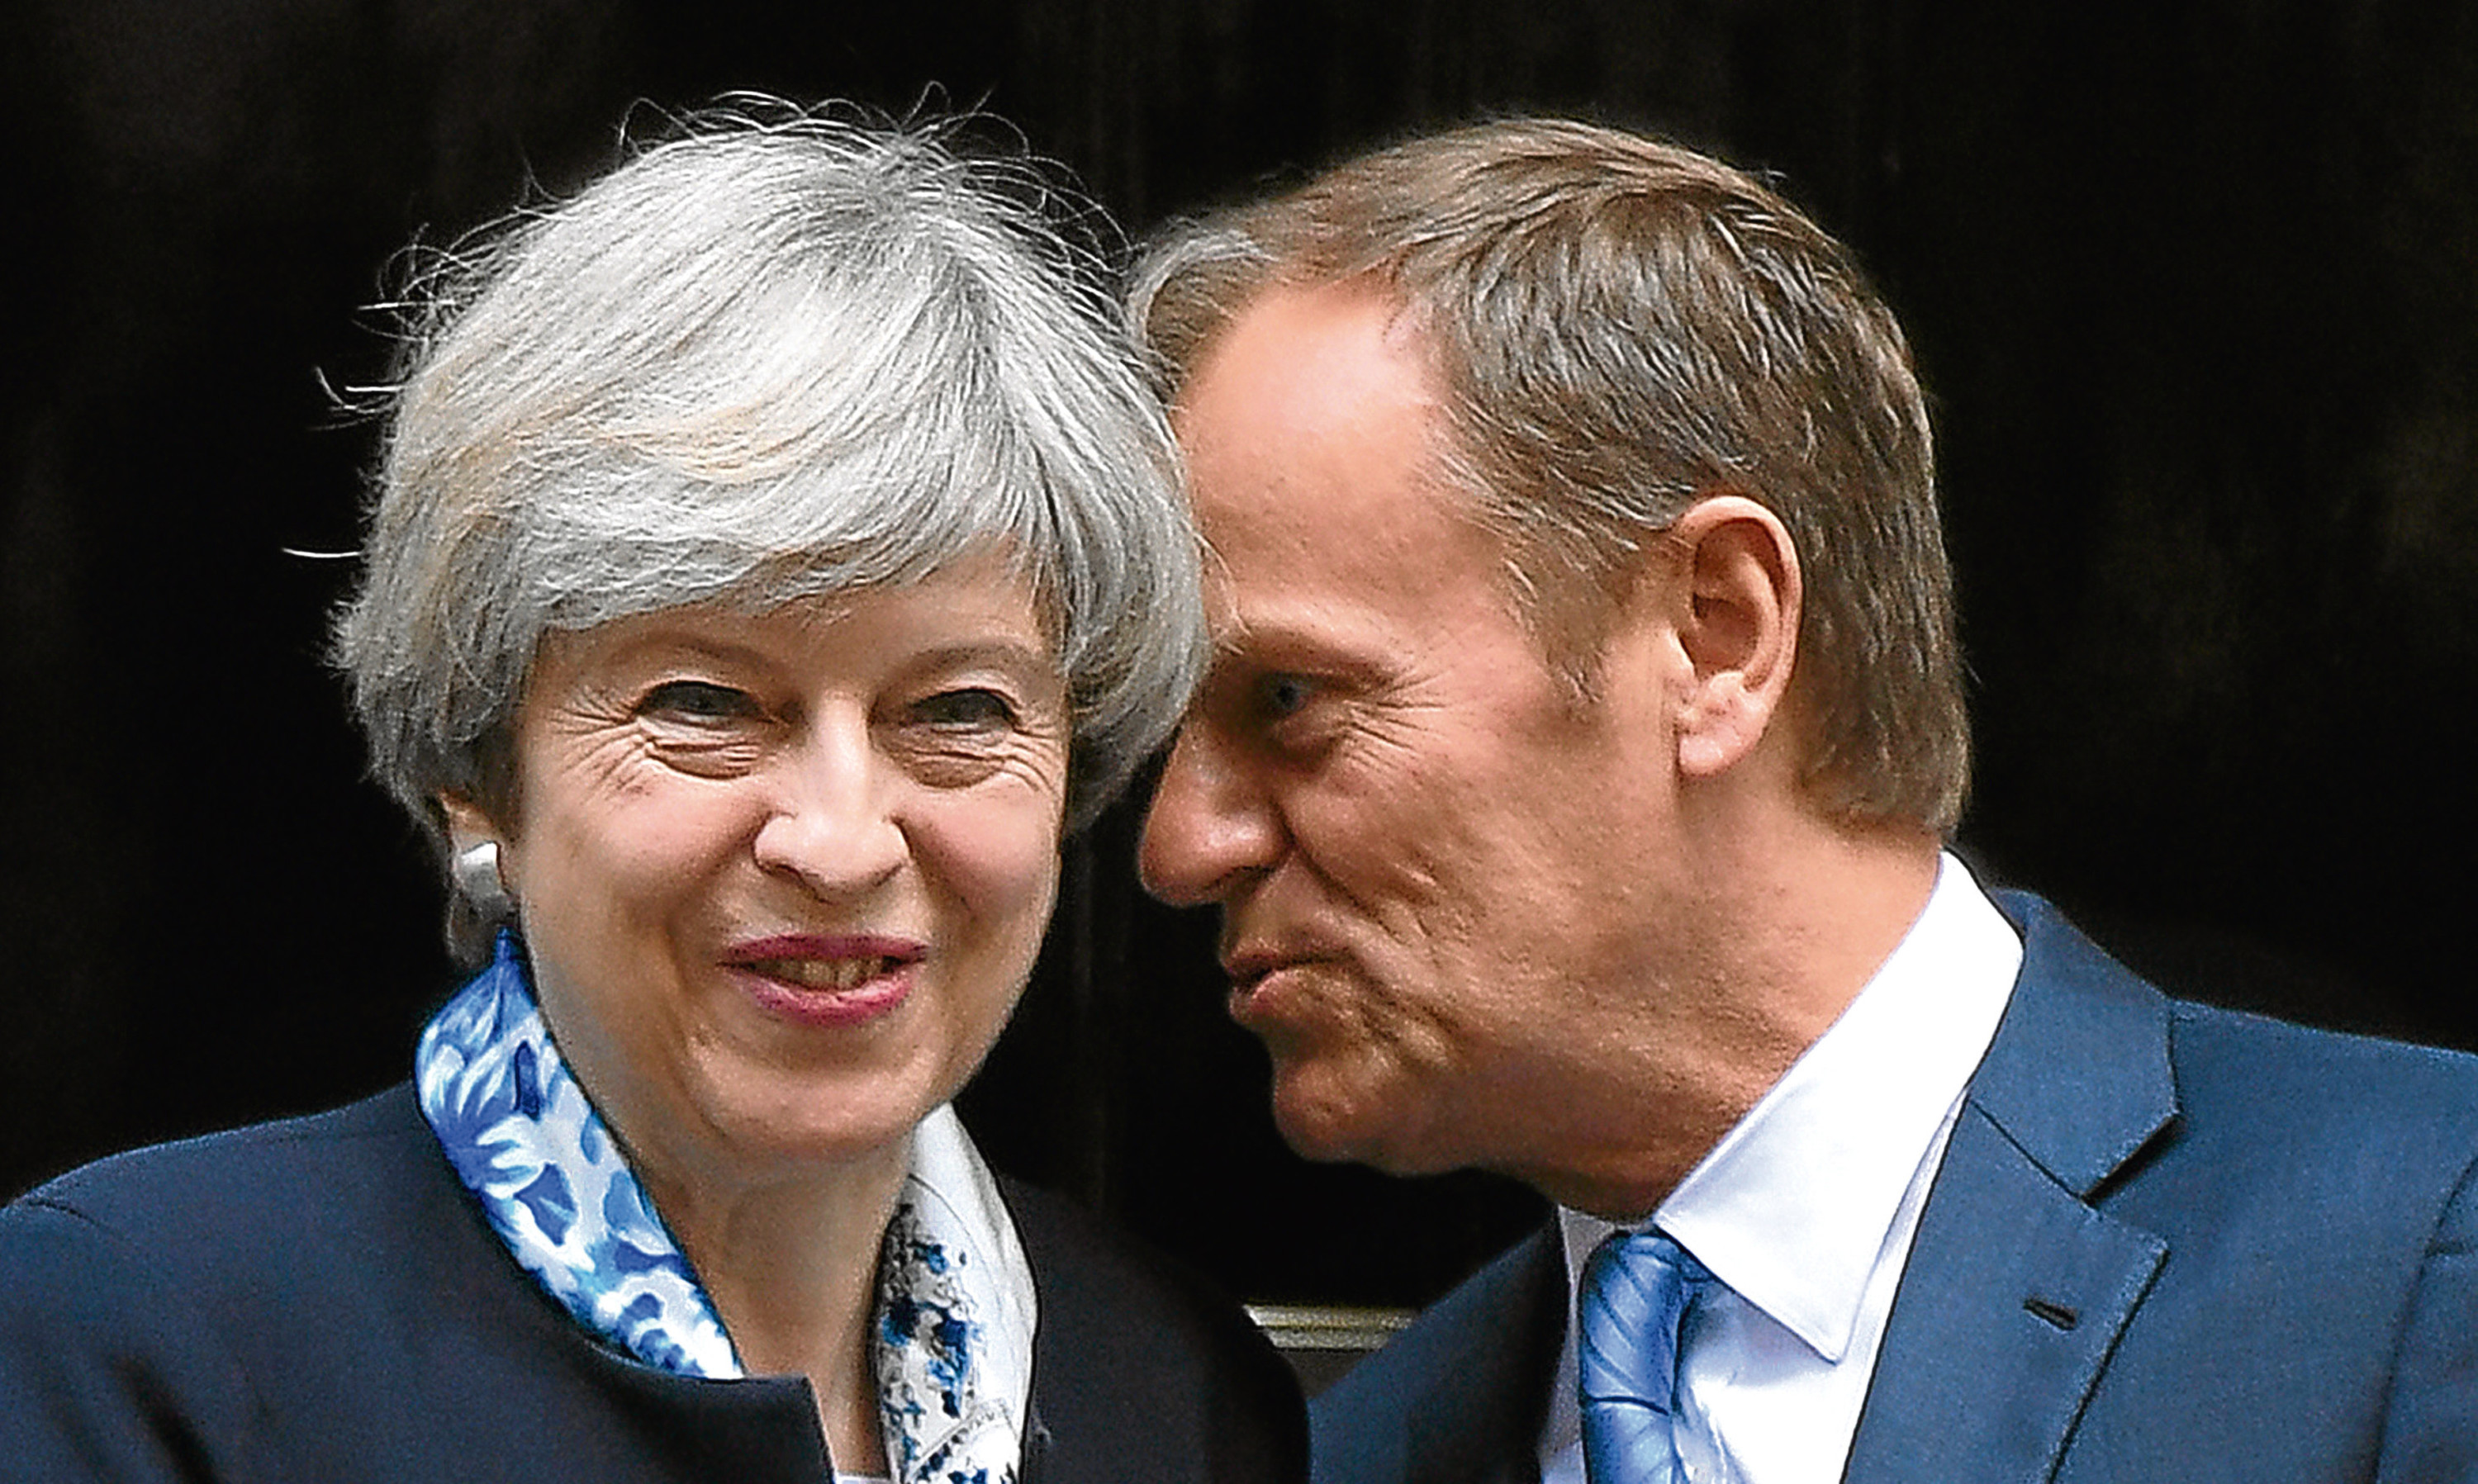 It's sweetness and light now between Theresa May and European Council president Donald Tusk but how long will that stay the case through the Brexit talks?